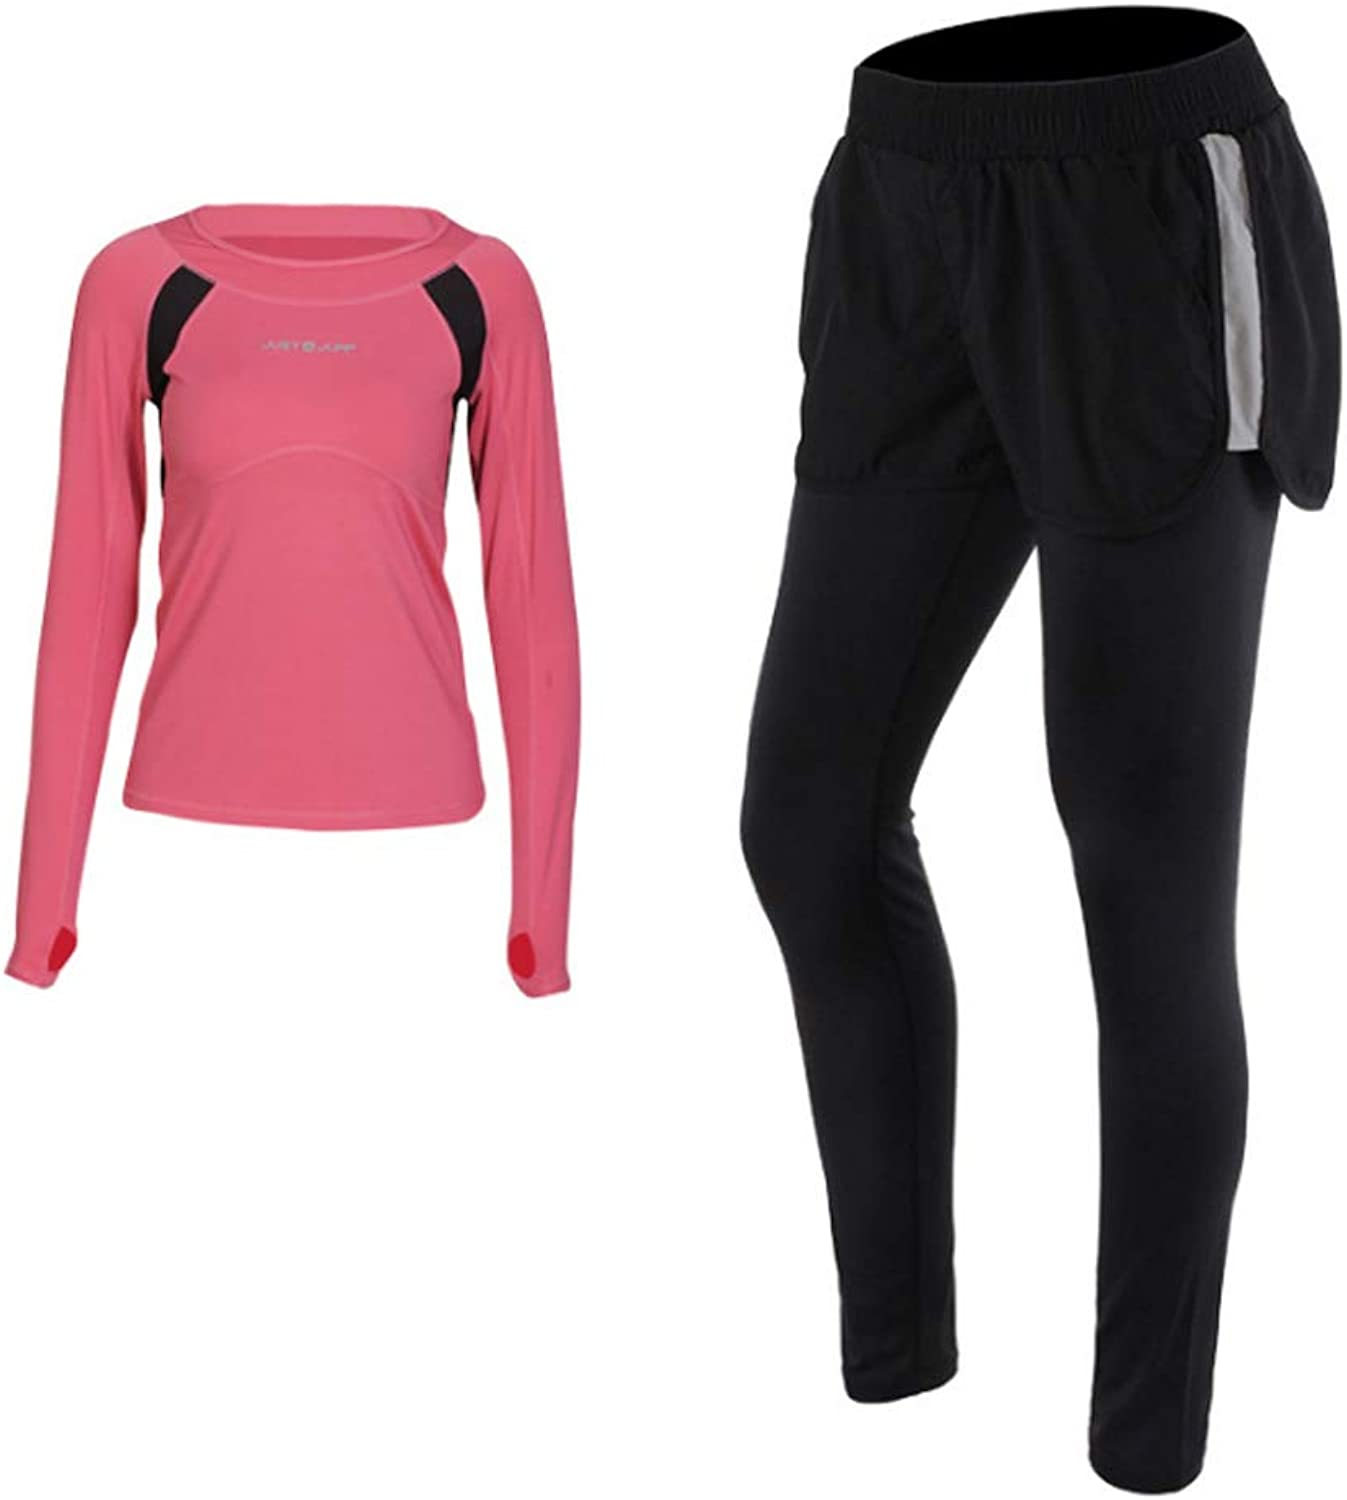 Women's Yoga Clothing Sportswear LongSleeved Breathable and QuickDrying Fitness Clothes Gym Running Fitness Clothes